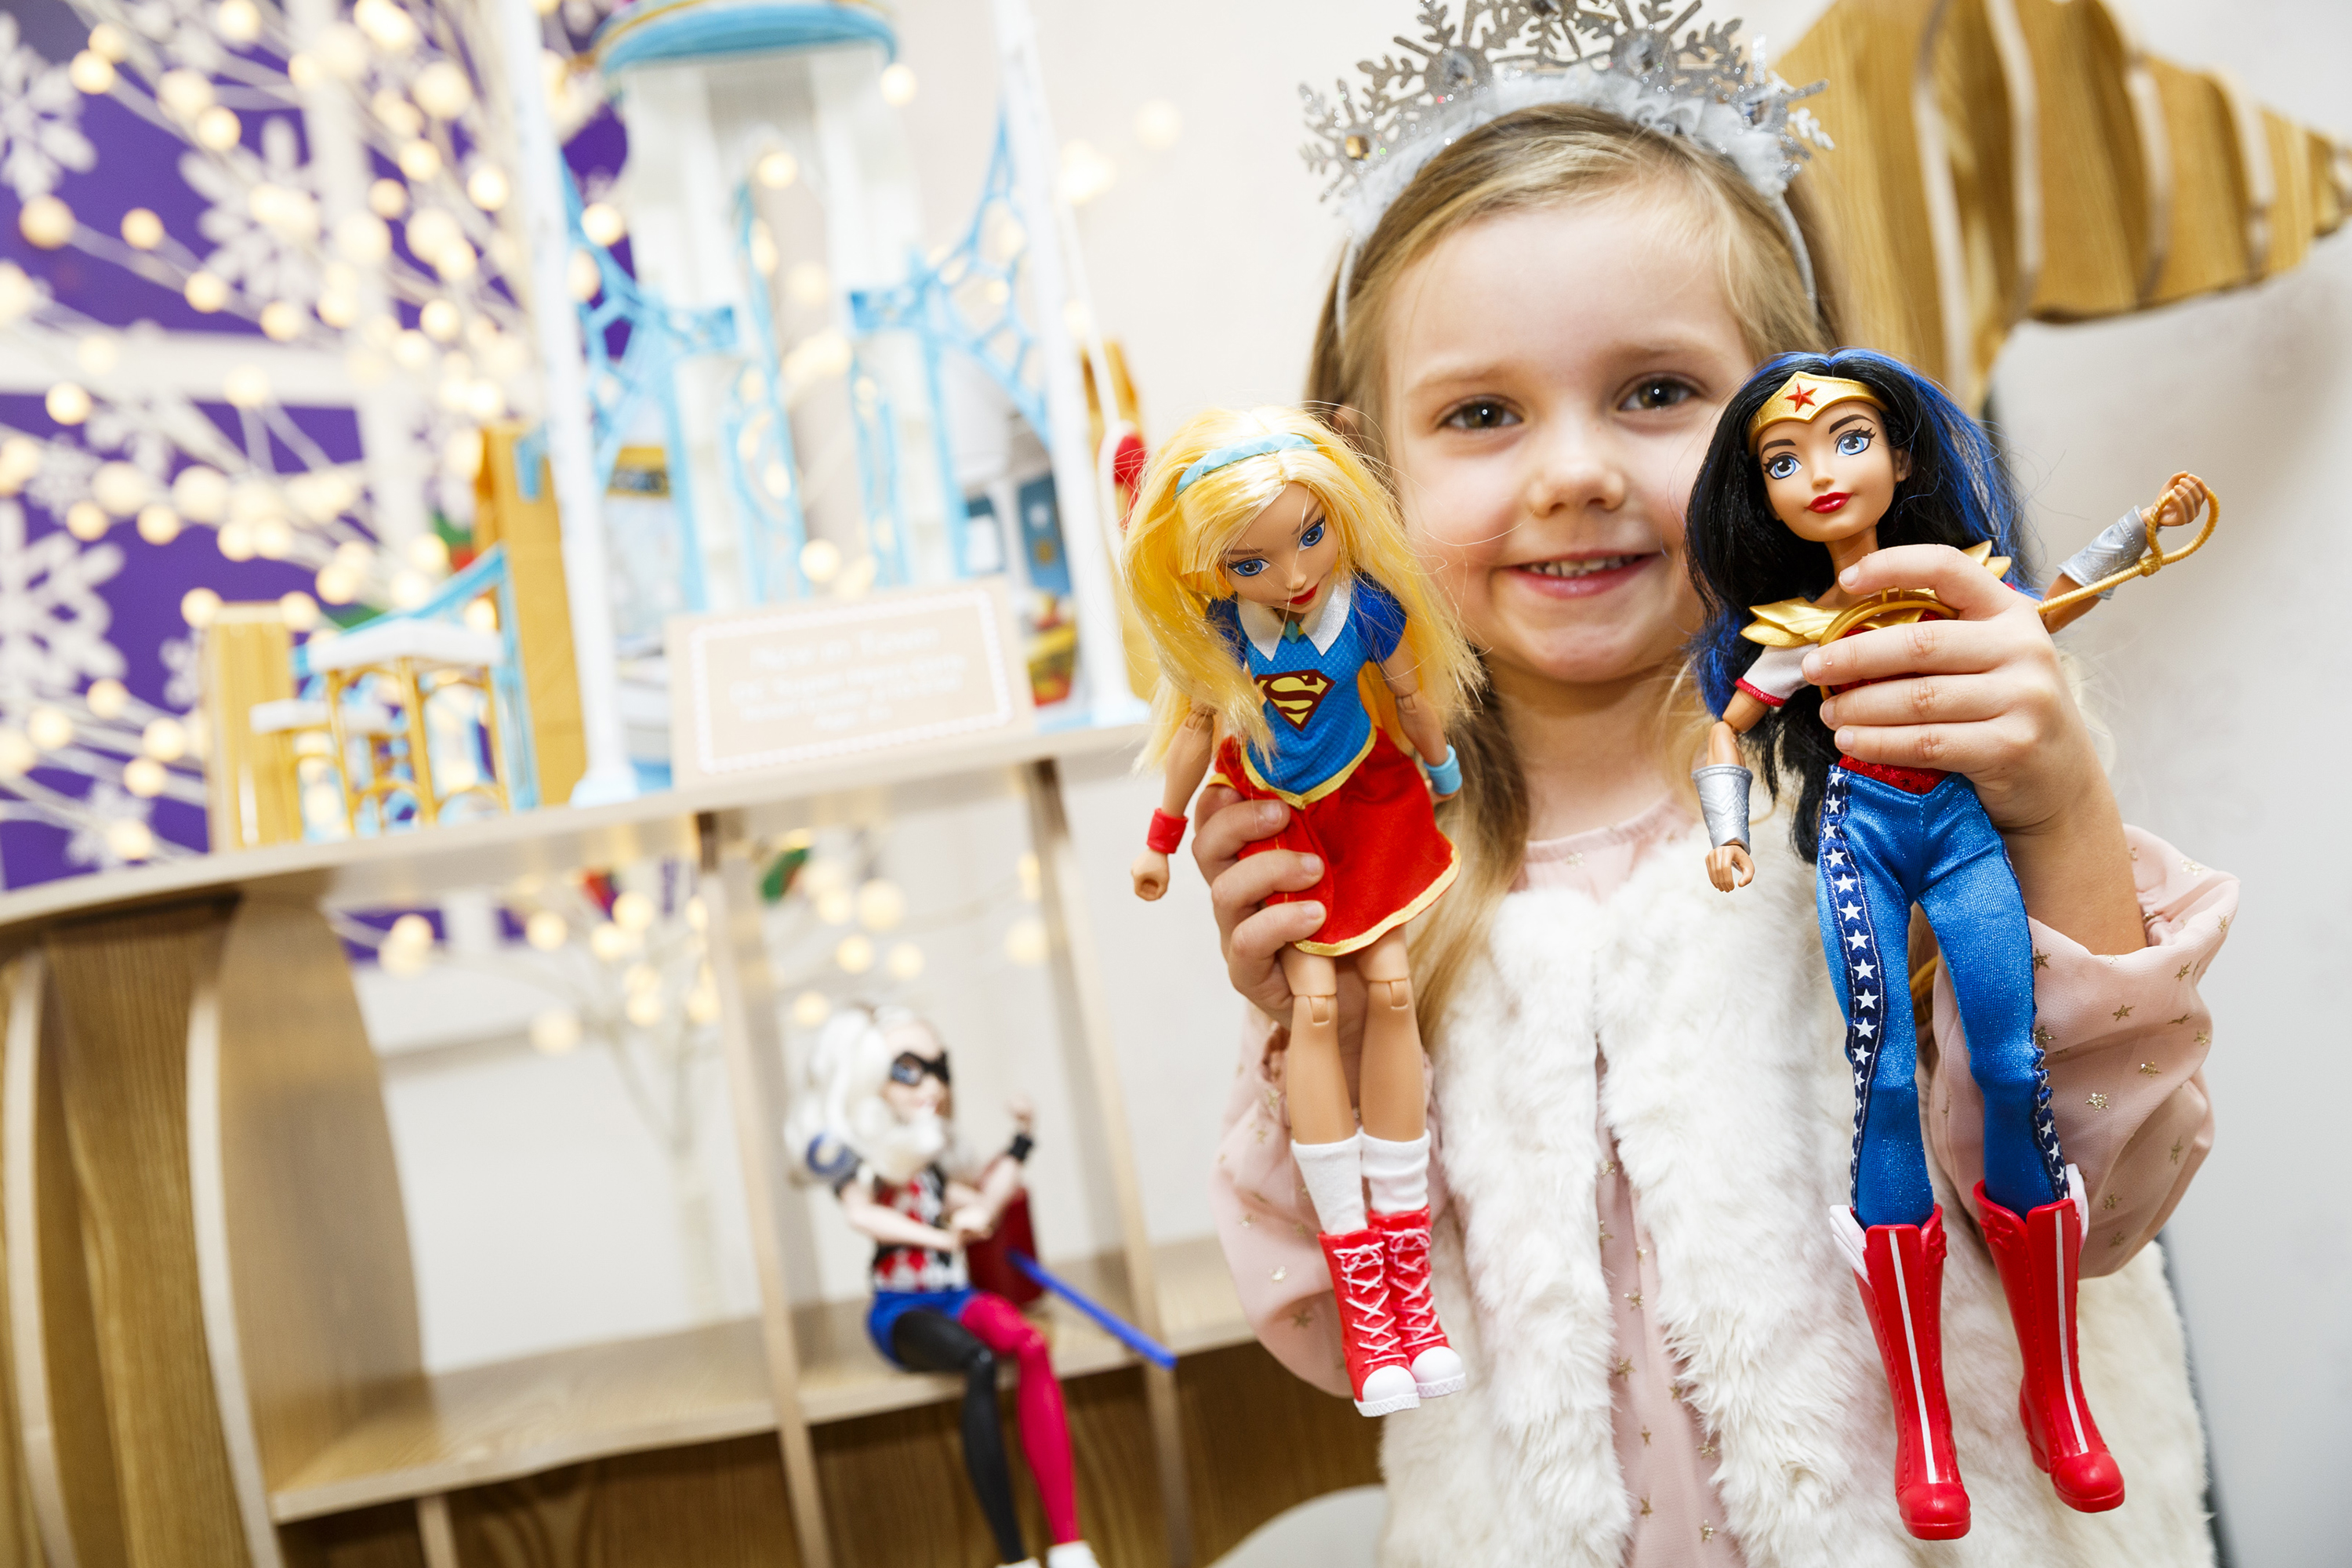 From Barbie to Superheroes: The New Femininity in Dolls